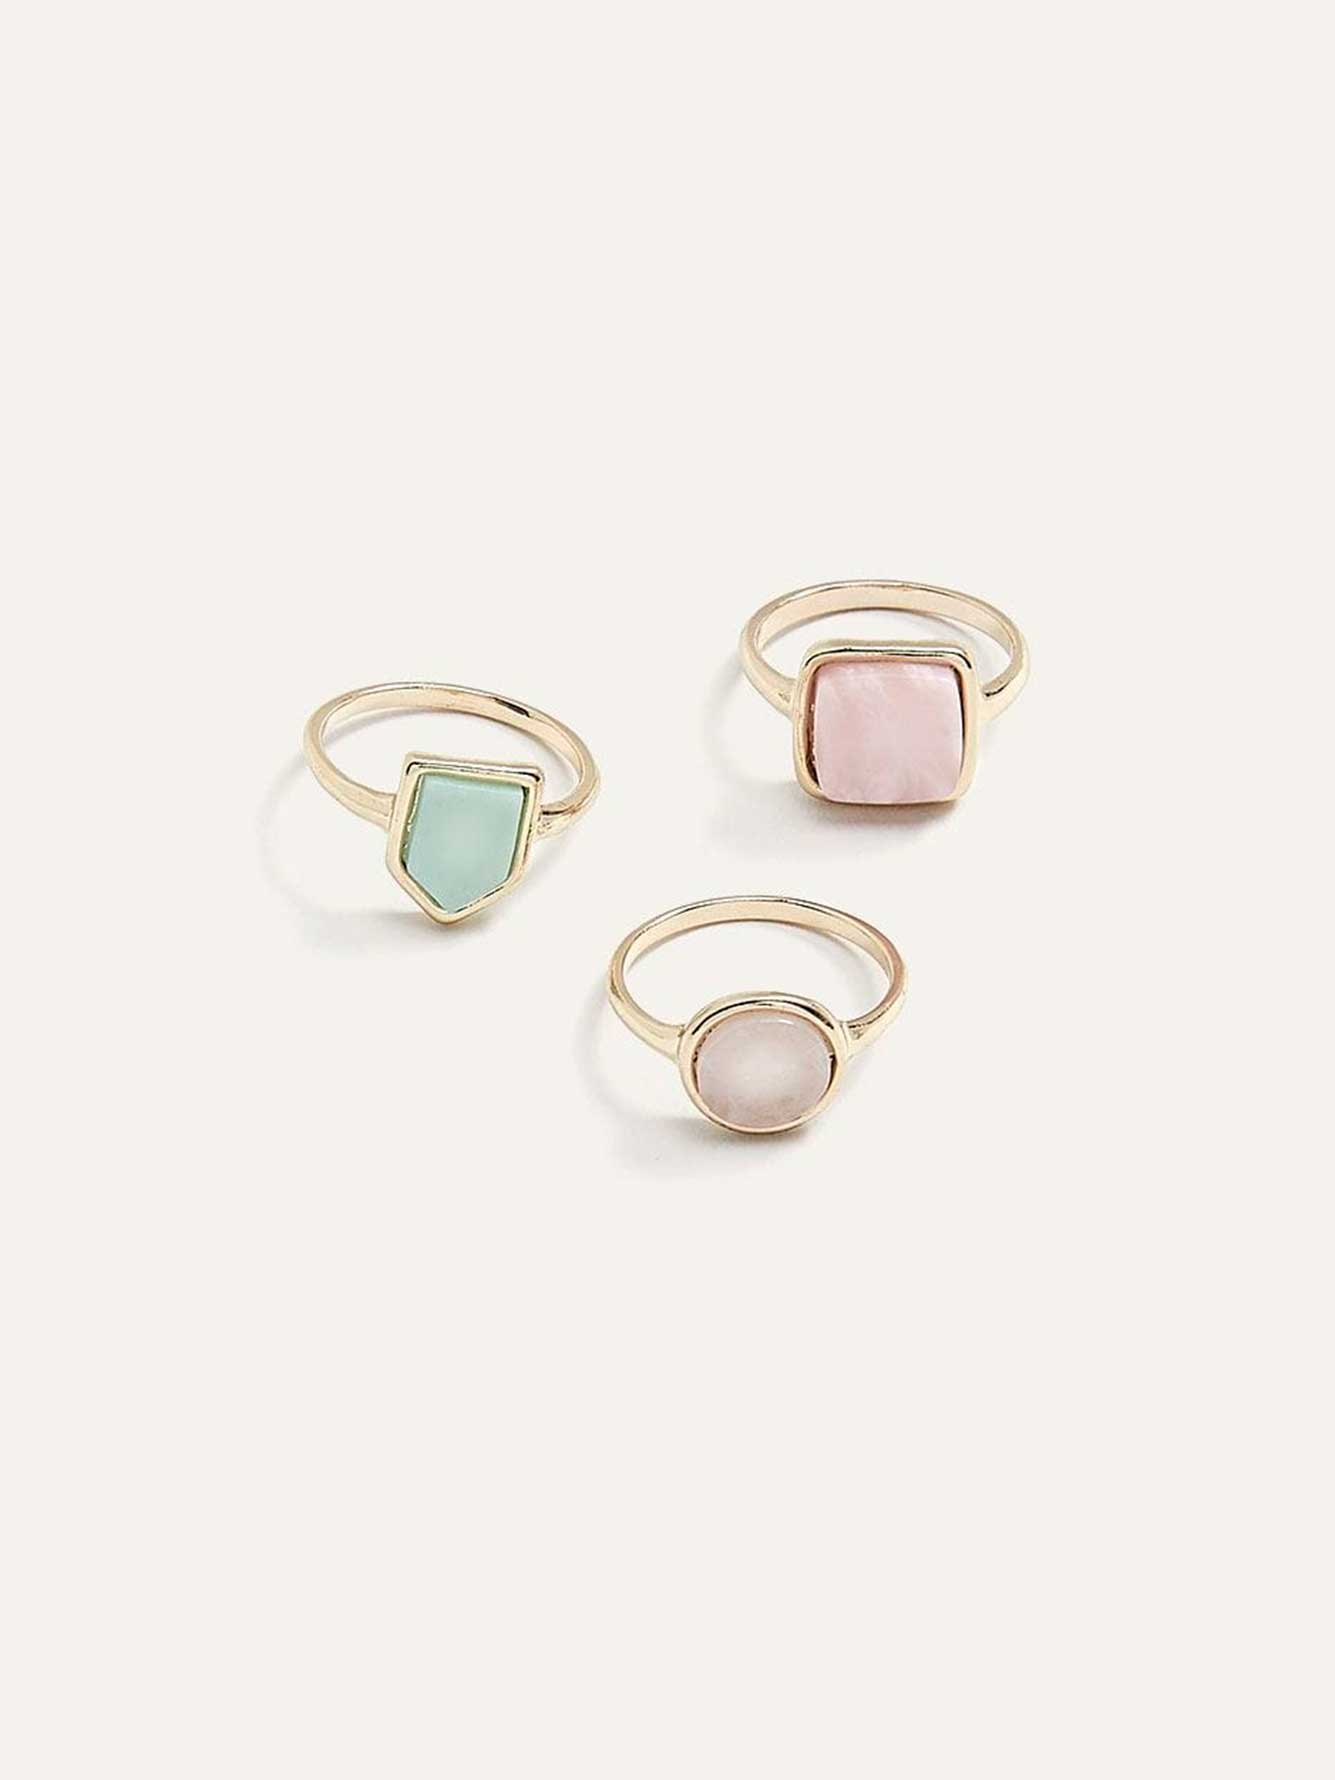 3 Rings with Stones